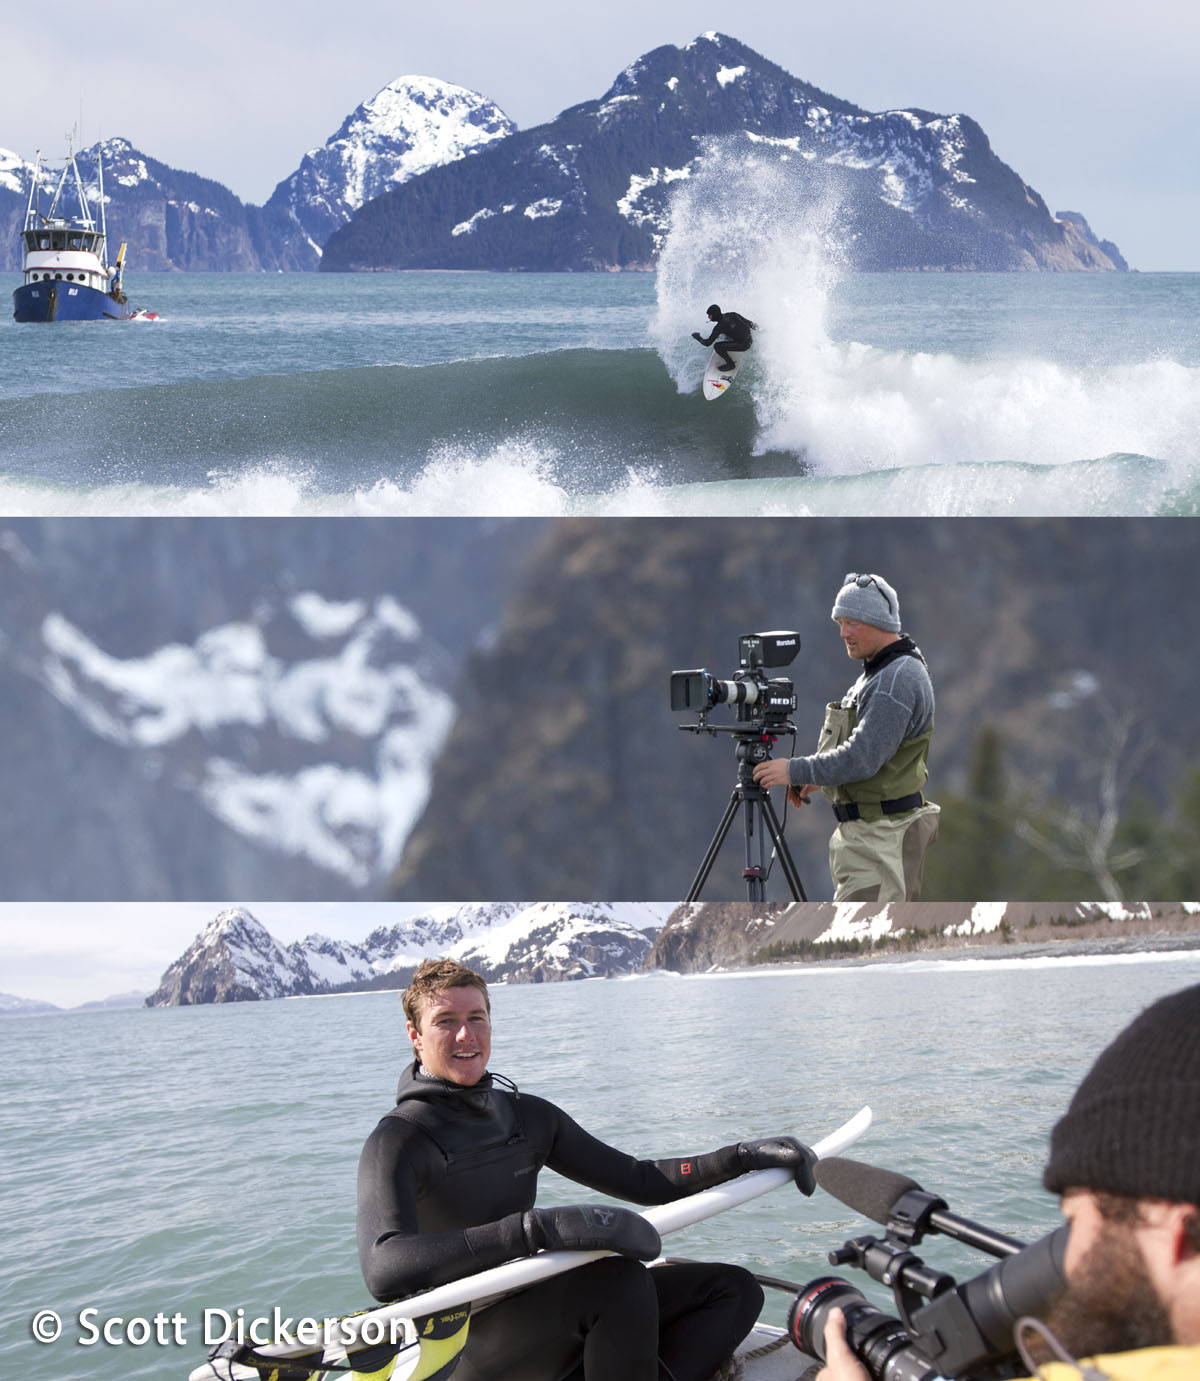 Brothers on the Run surfing Alaska